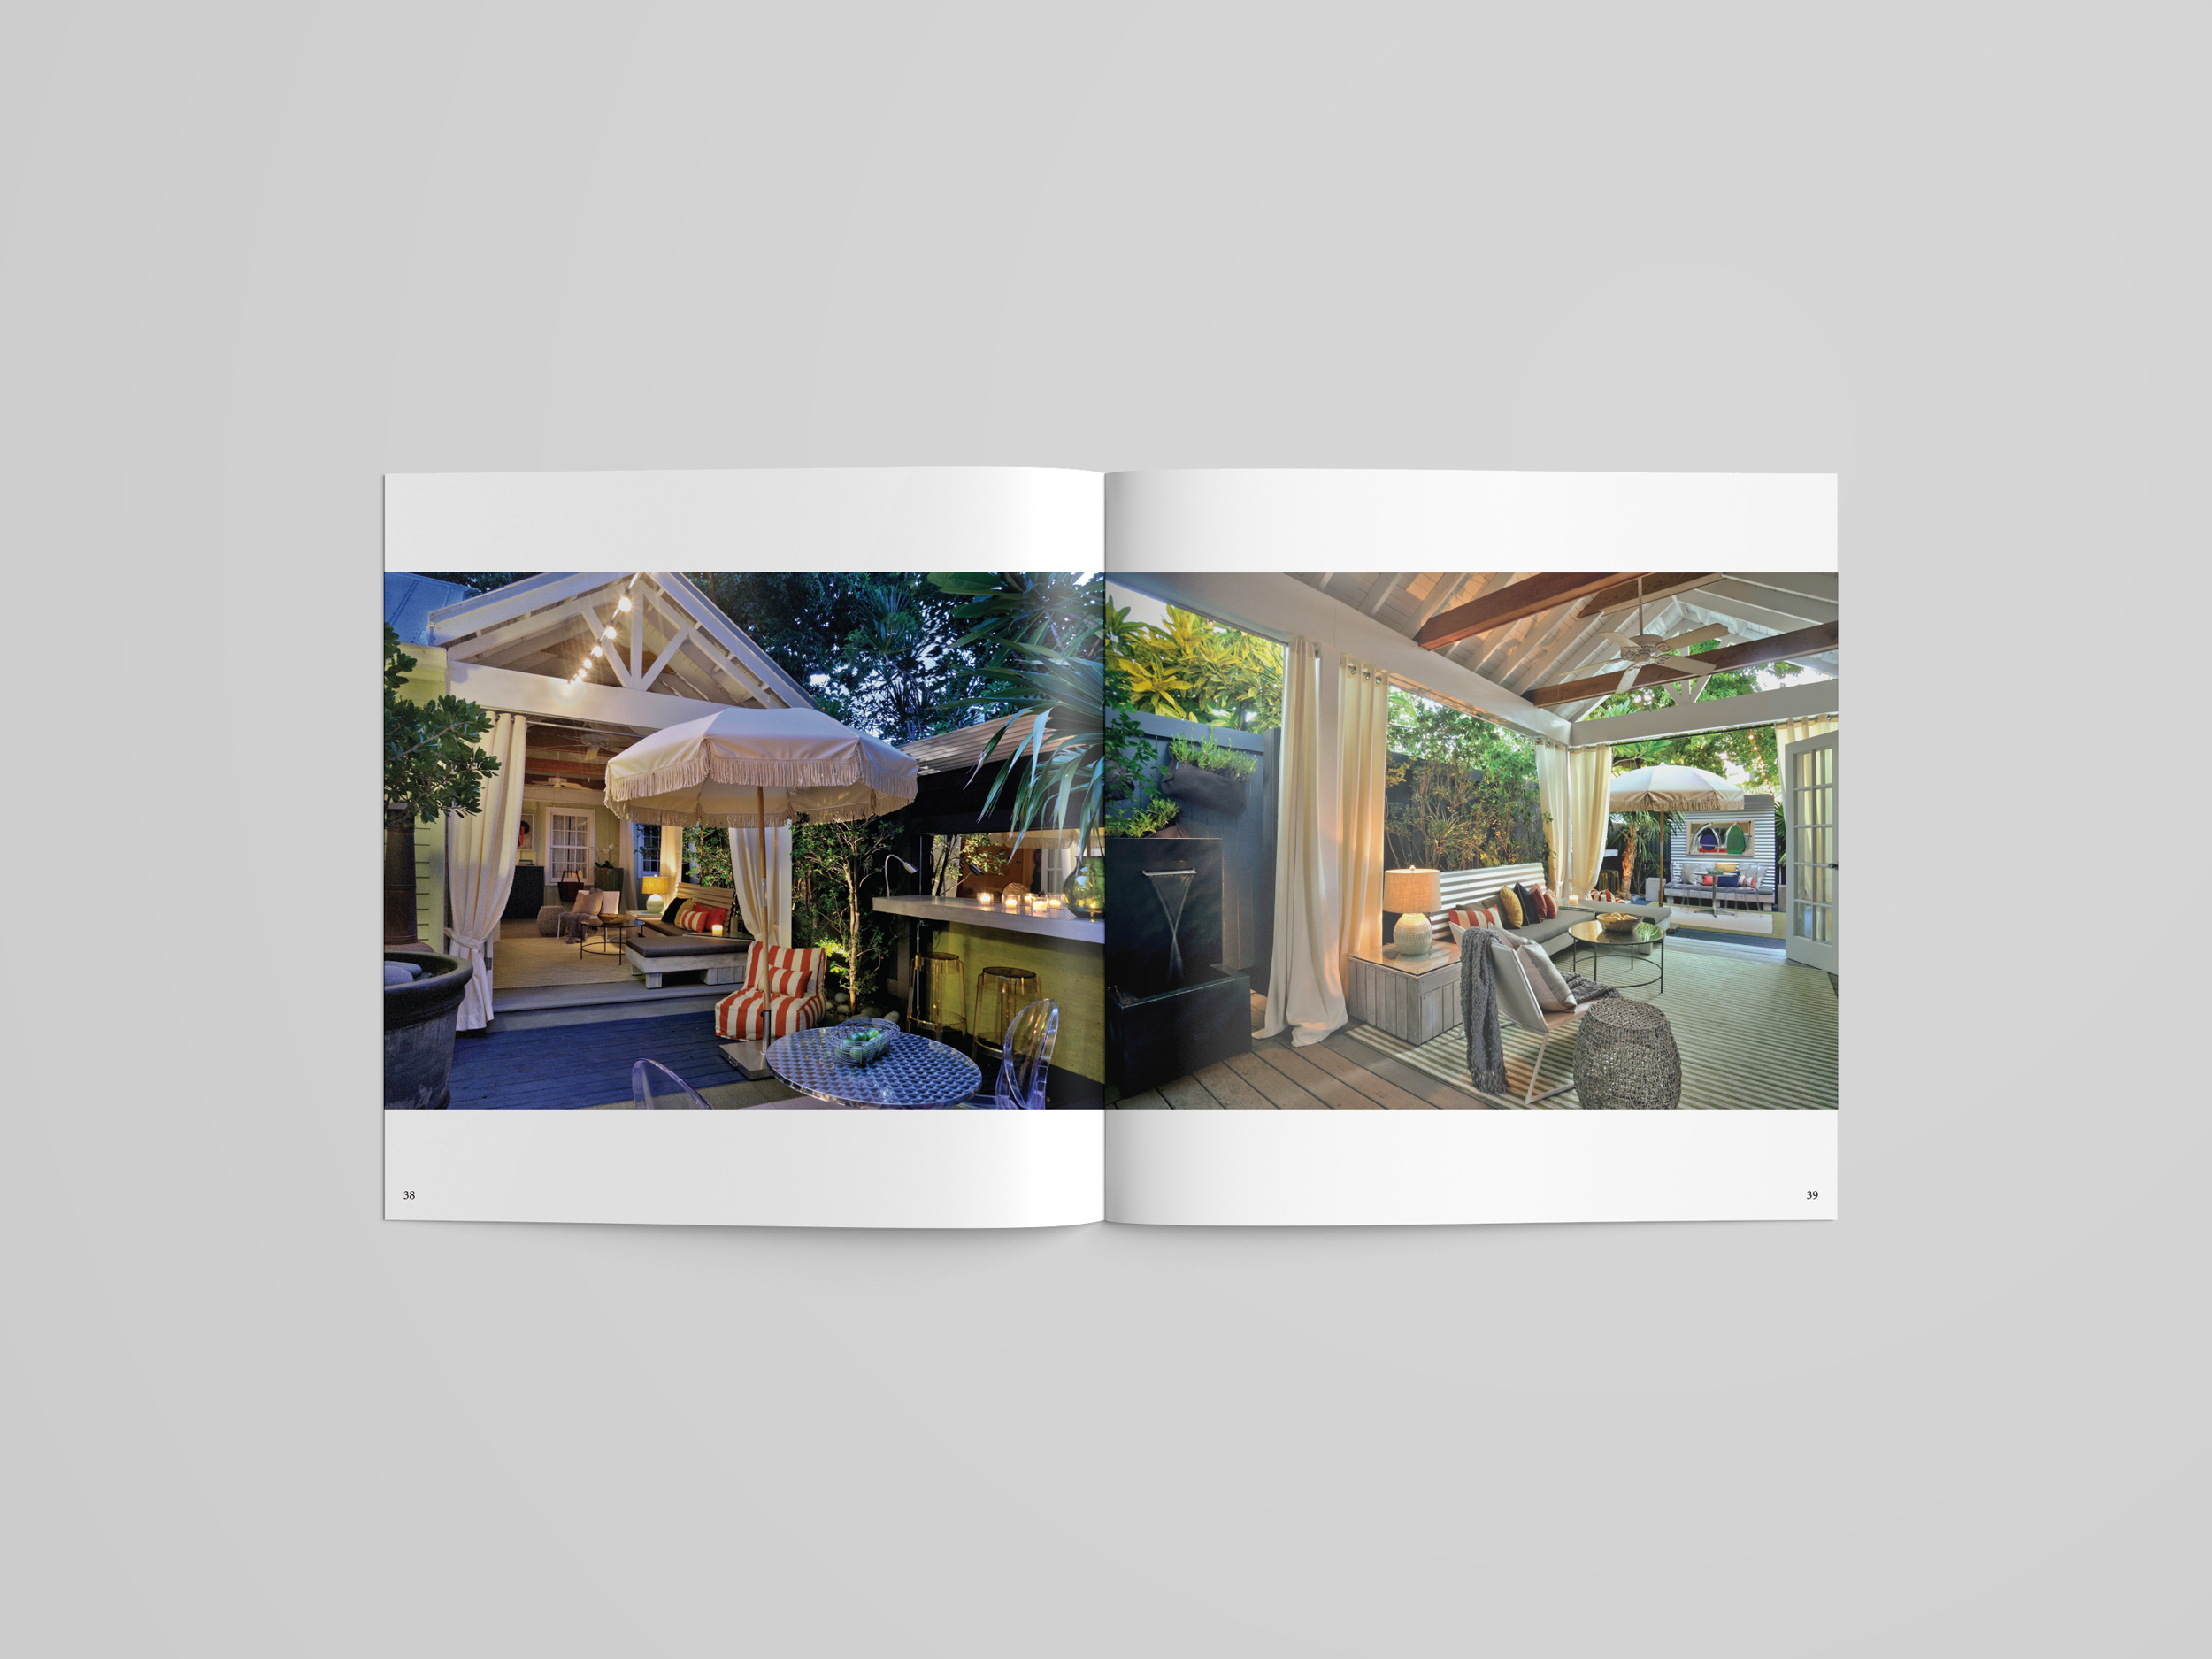 Debra Yates Key West art book pages garden design